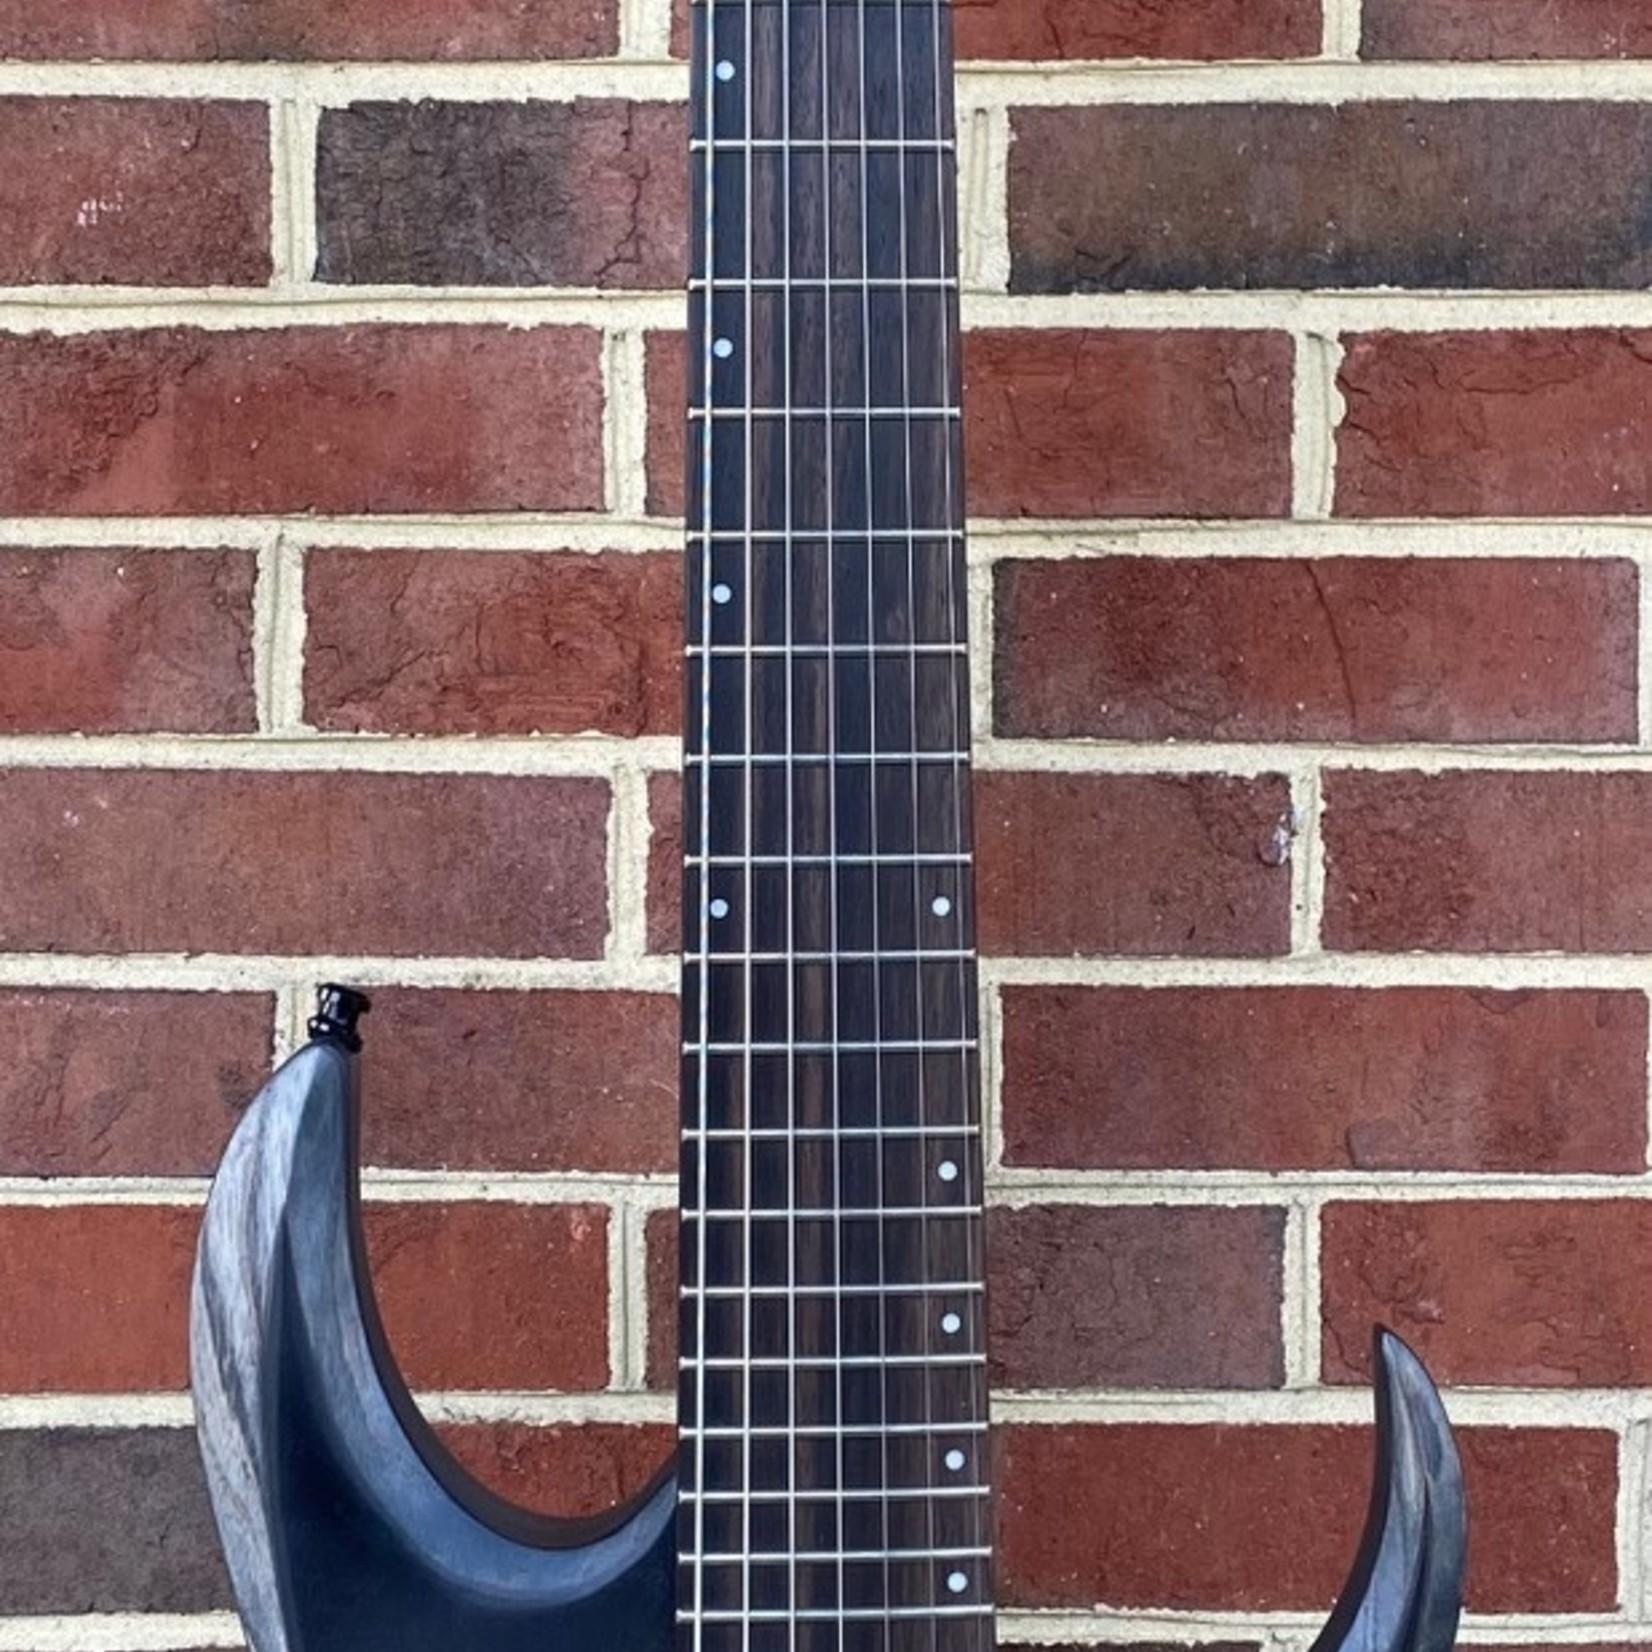 Ibanez Ibanez RGD71ALPACKF Axion Label, Charcoal Burst Black Stained Flat, Bareknuckle Aftermath Pickups, SN# I210323557